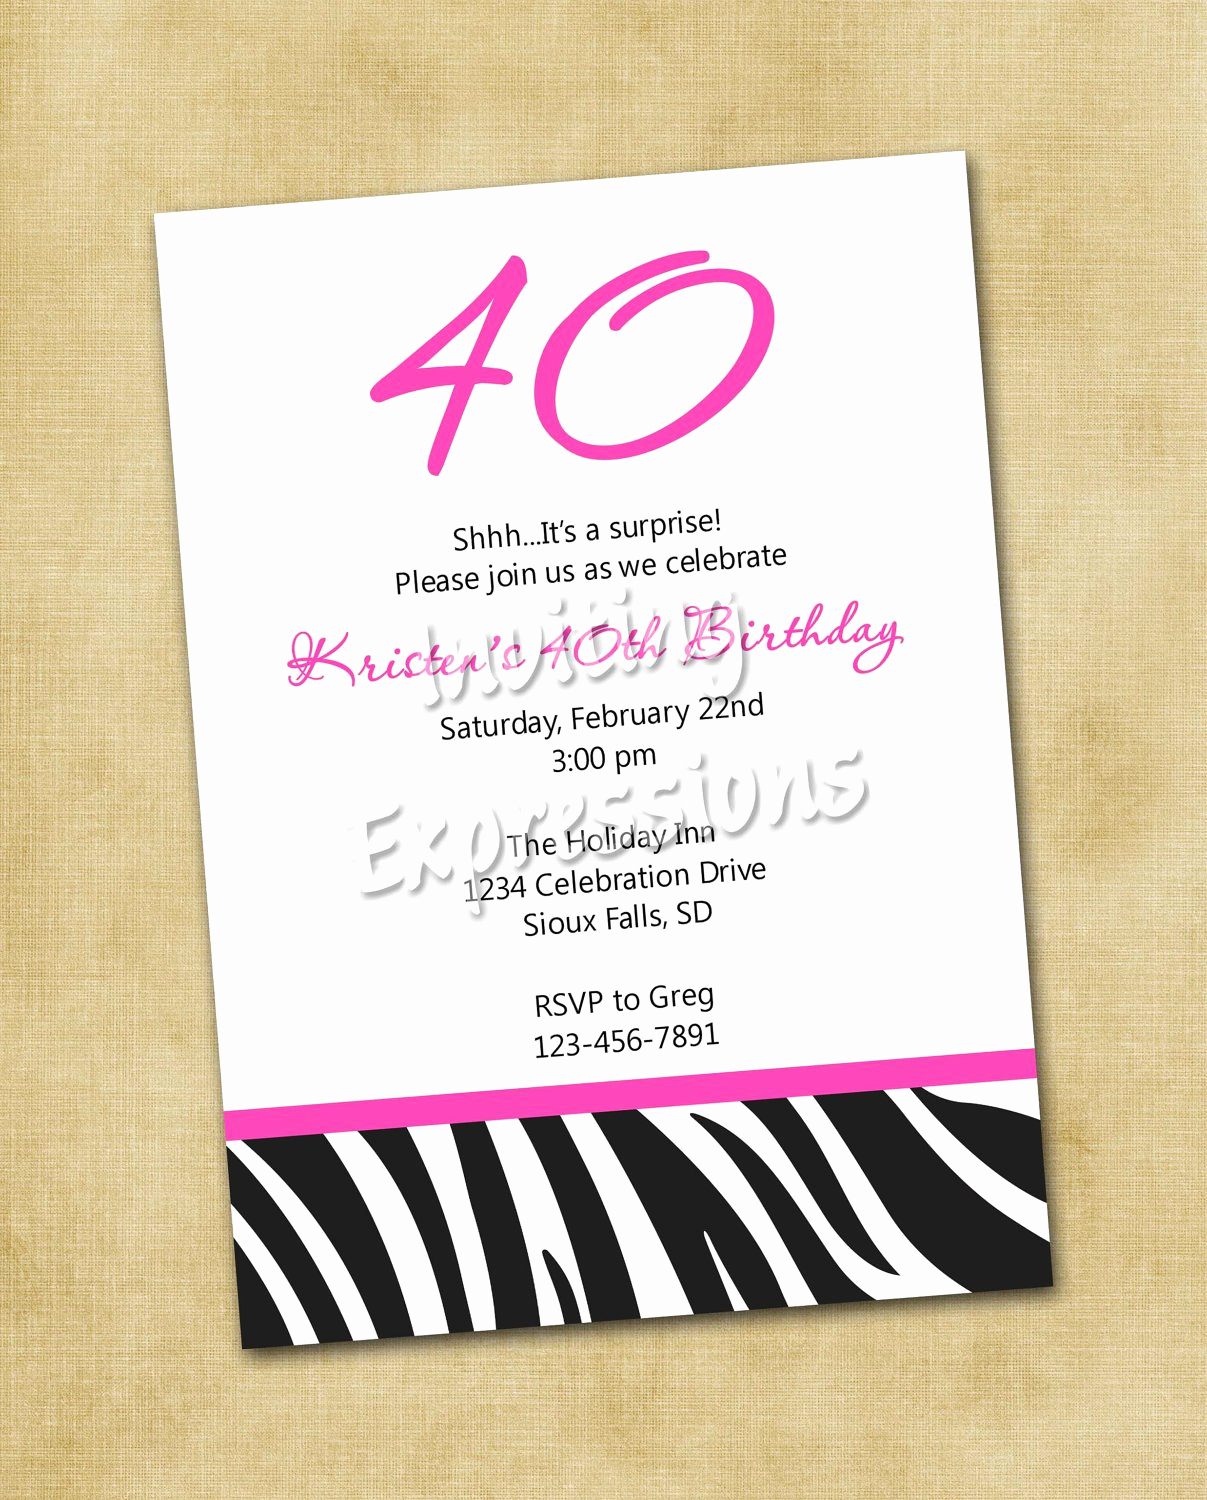 40th Birthday Invitation Wording Funny Inspirational Surprise 40th Birthday Invitation Wording Samples